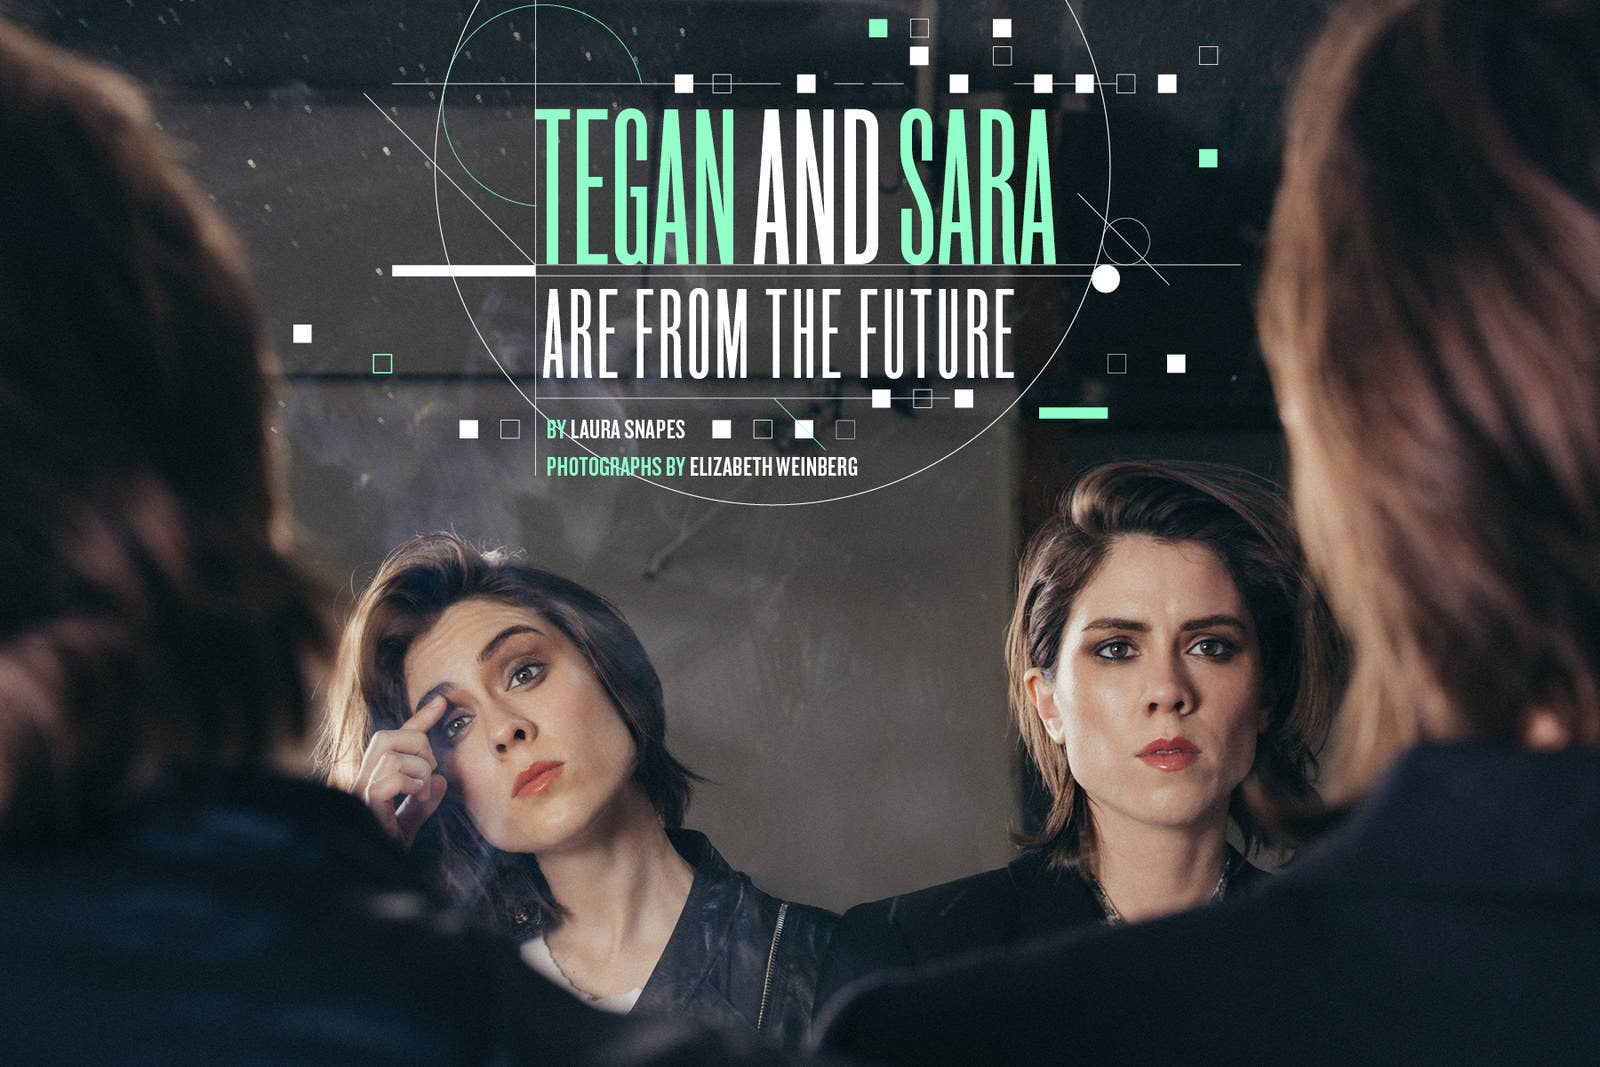 How The Rest Of World Up To Tegan And Sara Amazing Living Room